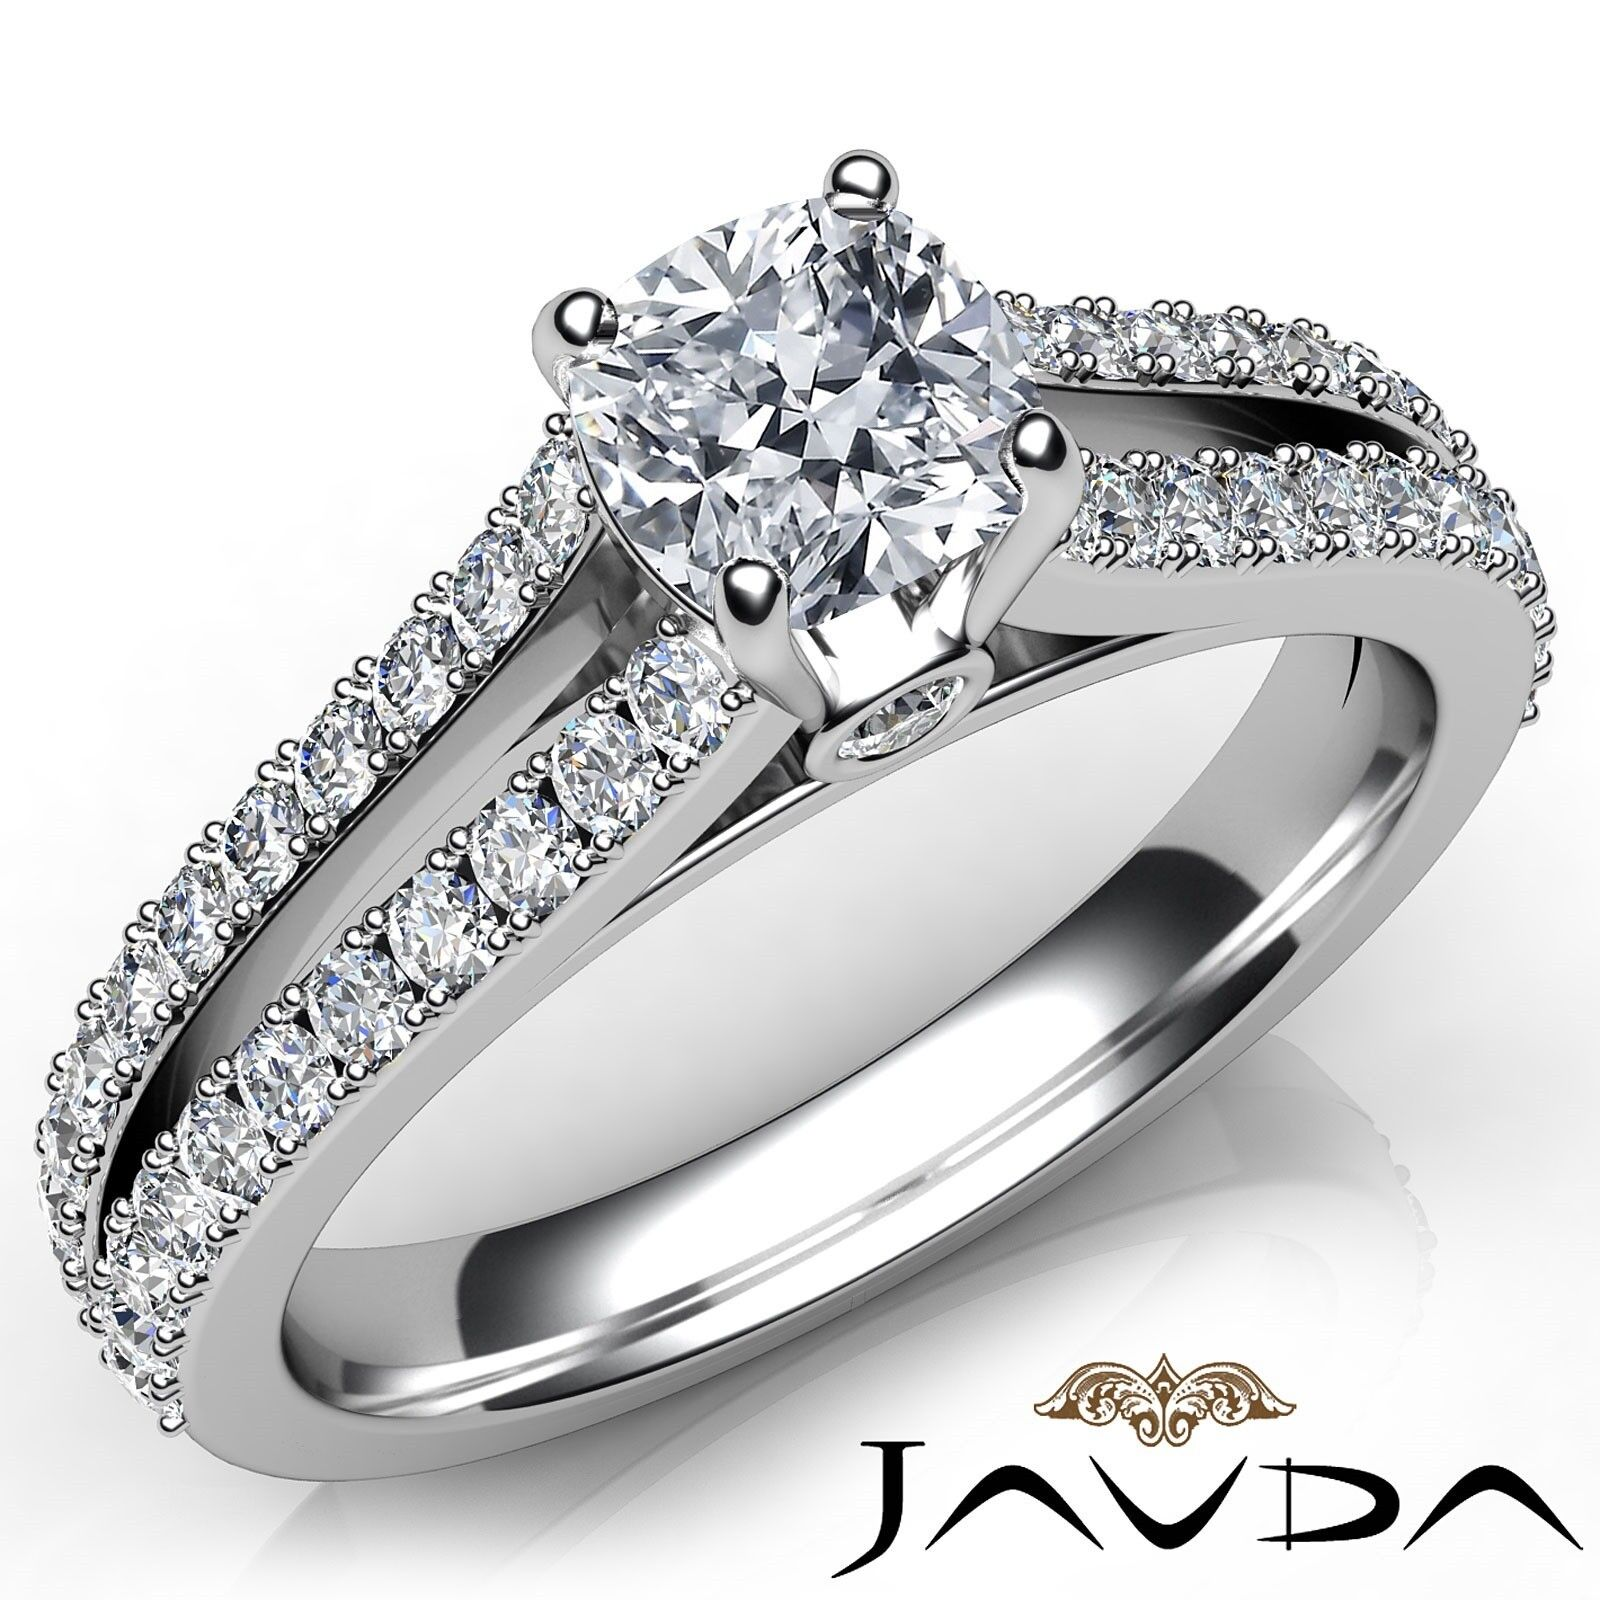 1.31ctw Double Prong Split Shank Cushion Diamond Engagement Ring GIA E-VS1  Gold